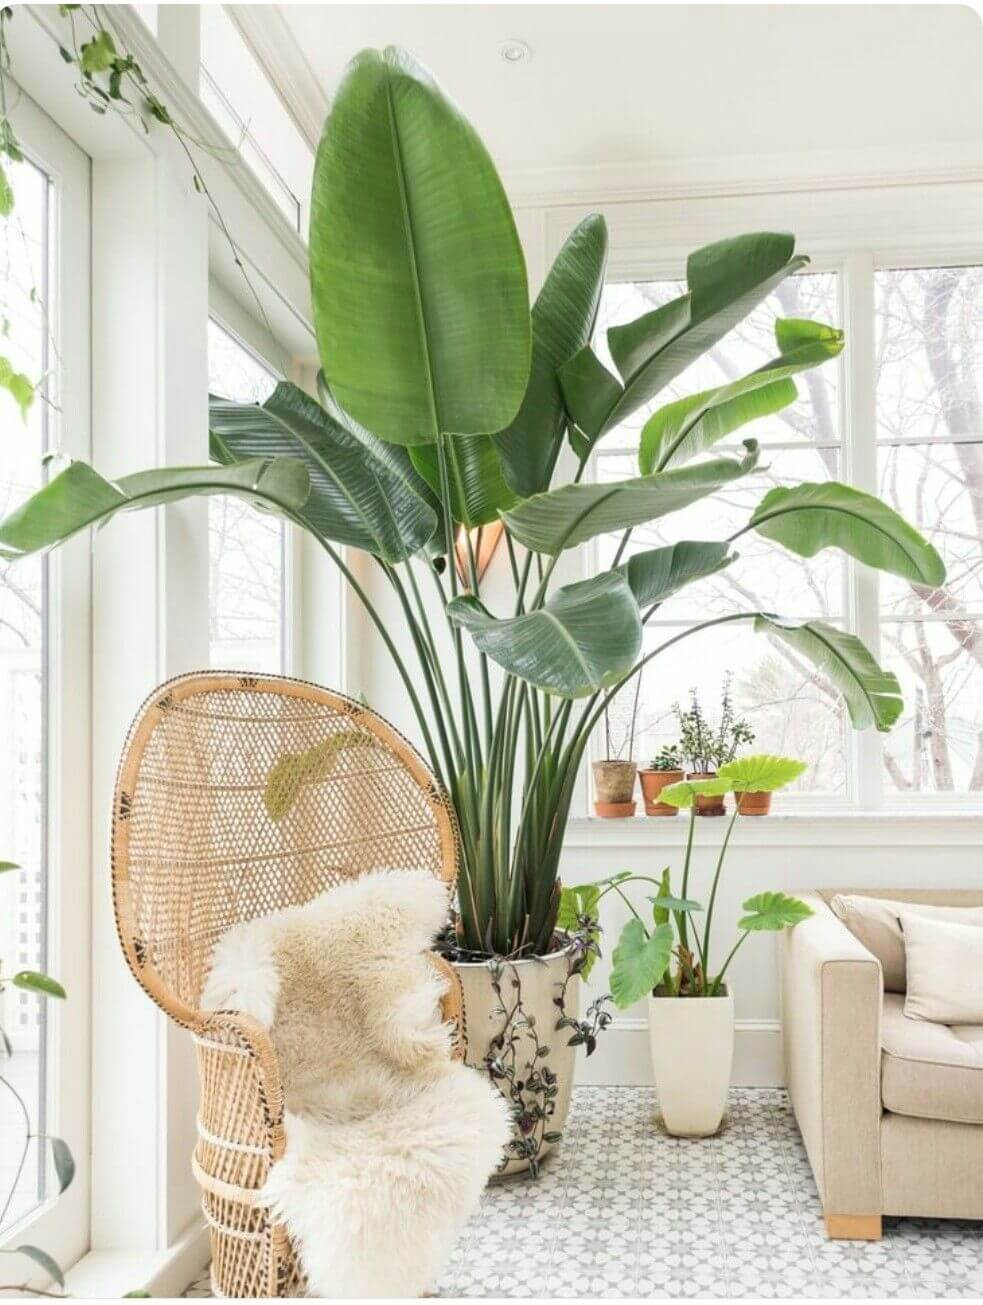 Tall Banana Leaves in a White Living Room